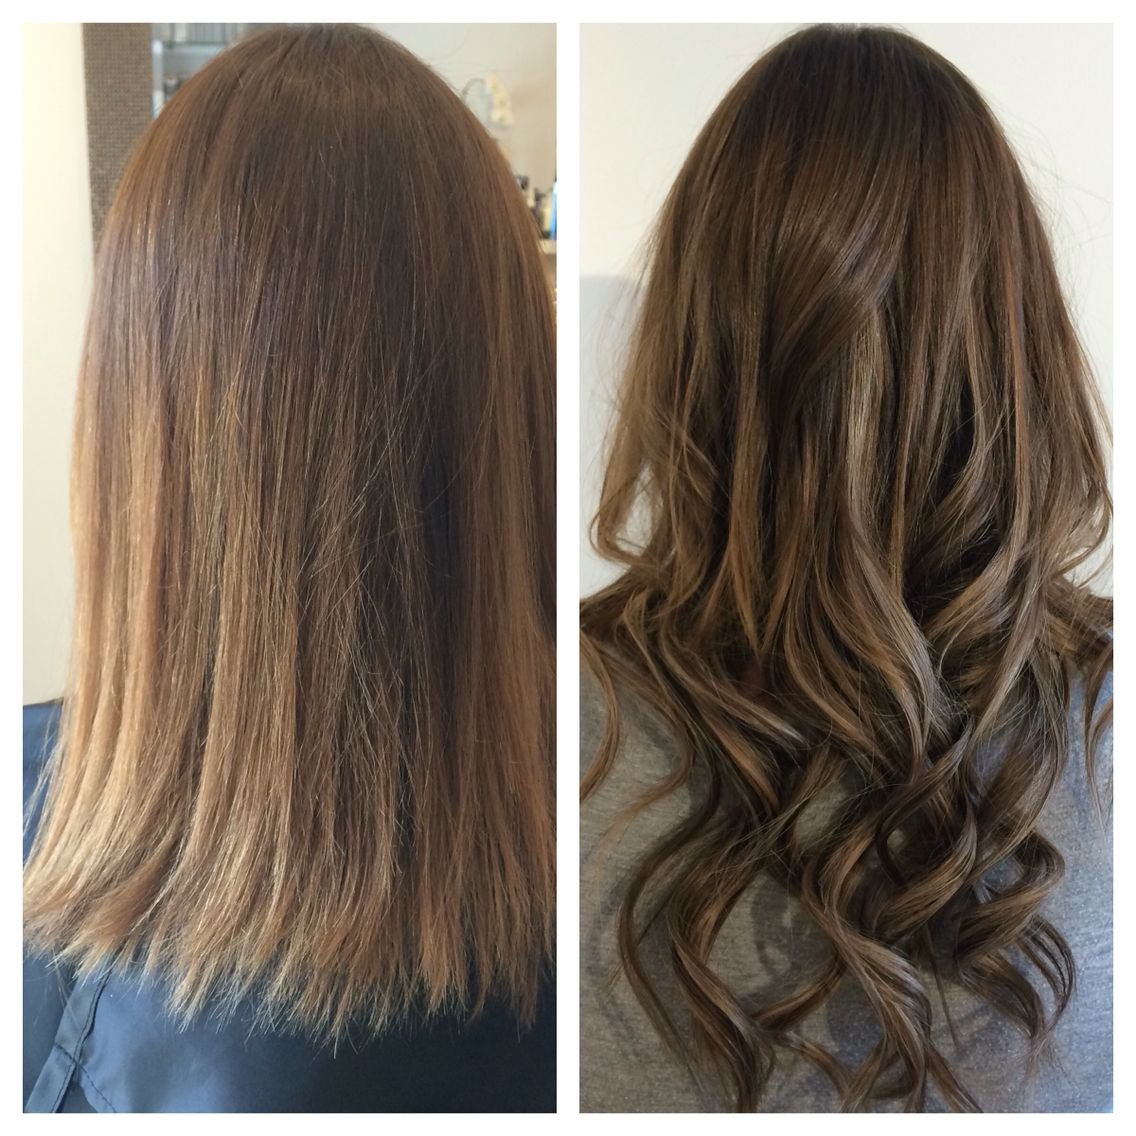 Babe i tip hair extensions babehair extensions itip h a i r babe i tip hair extensions babehair extensions itip pmusecretfo Image collections